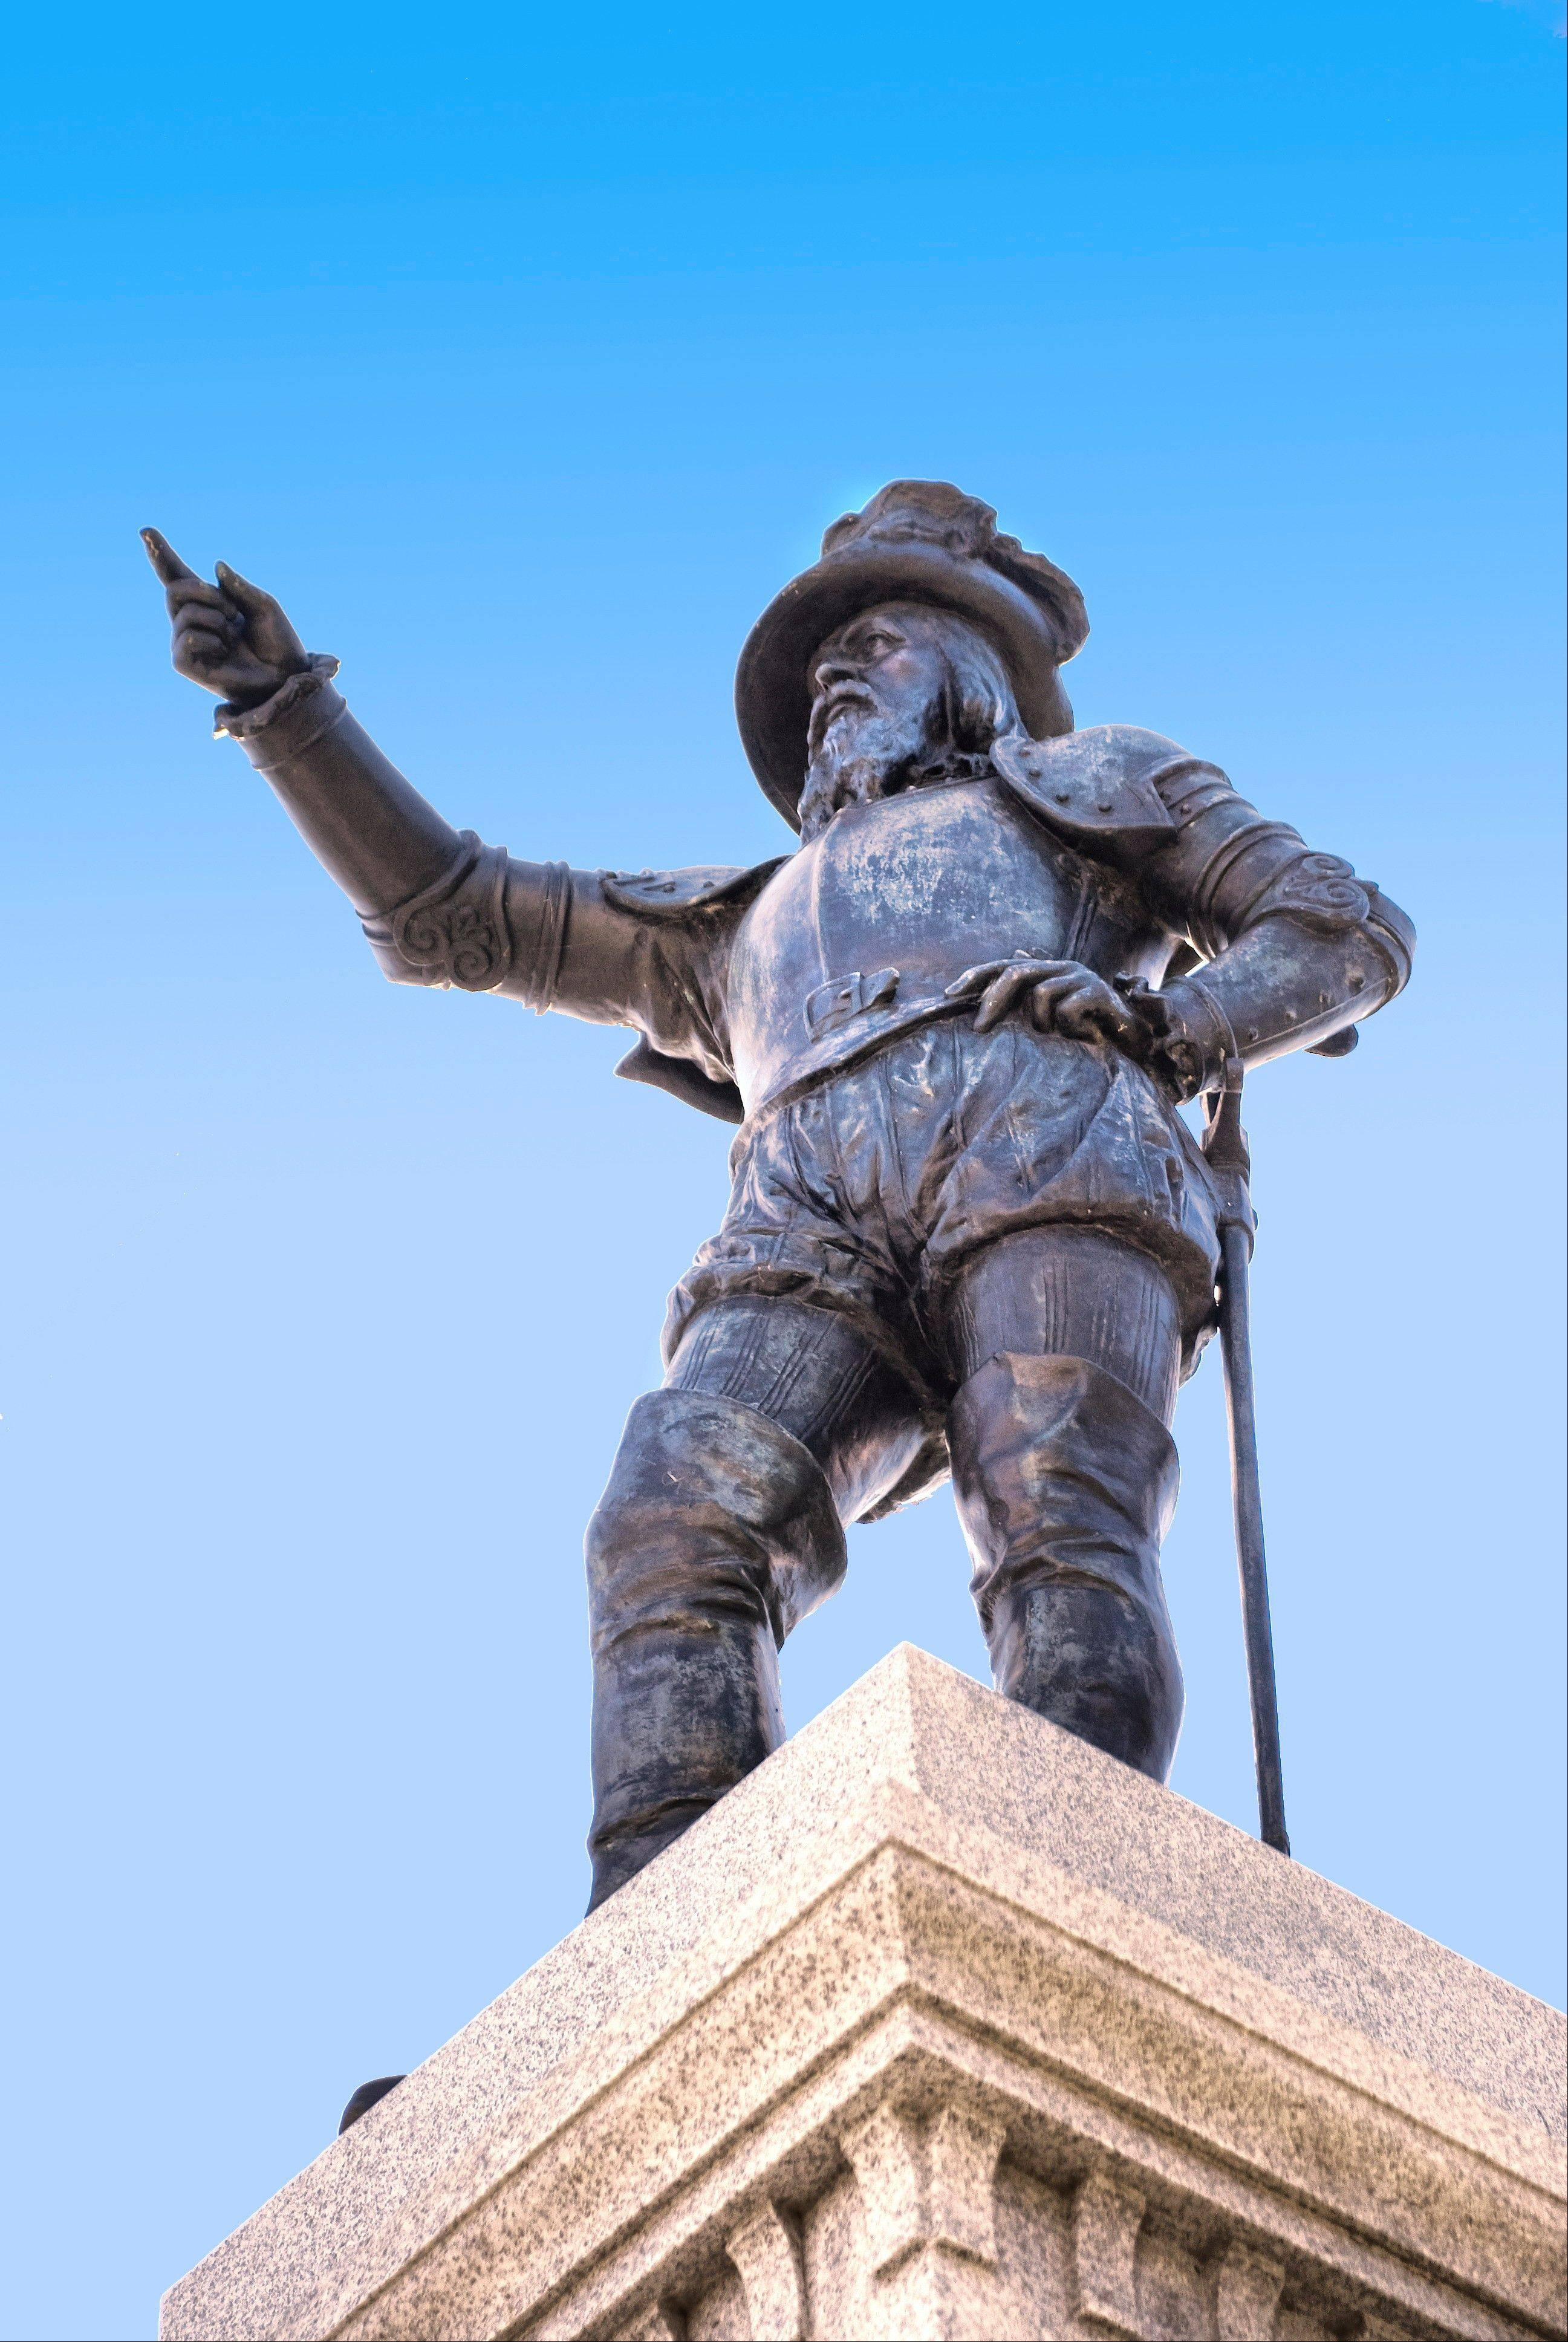 A statue of Spanish explorer Ponce de Leon is located at the foot of the Bridge of Lions in St. Augustine's Plaza de La Constitucion.